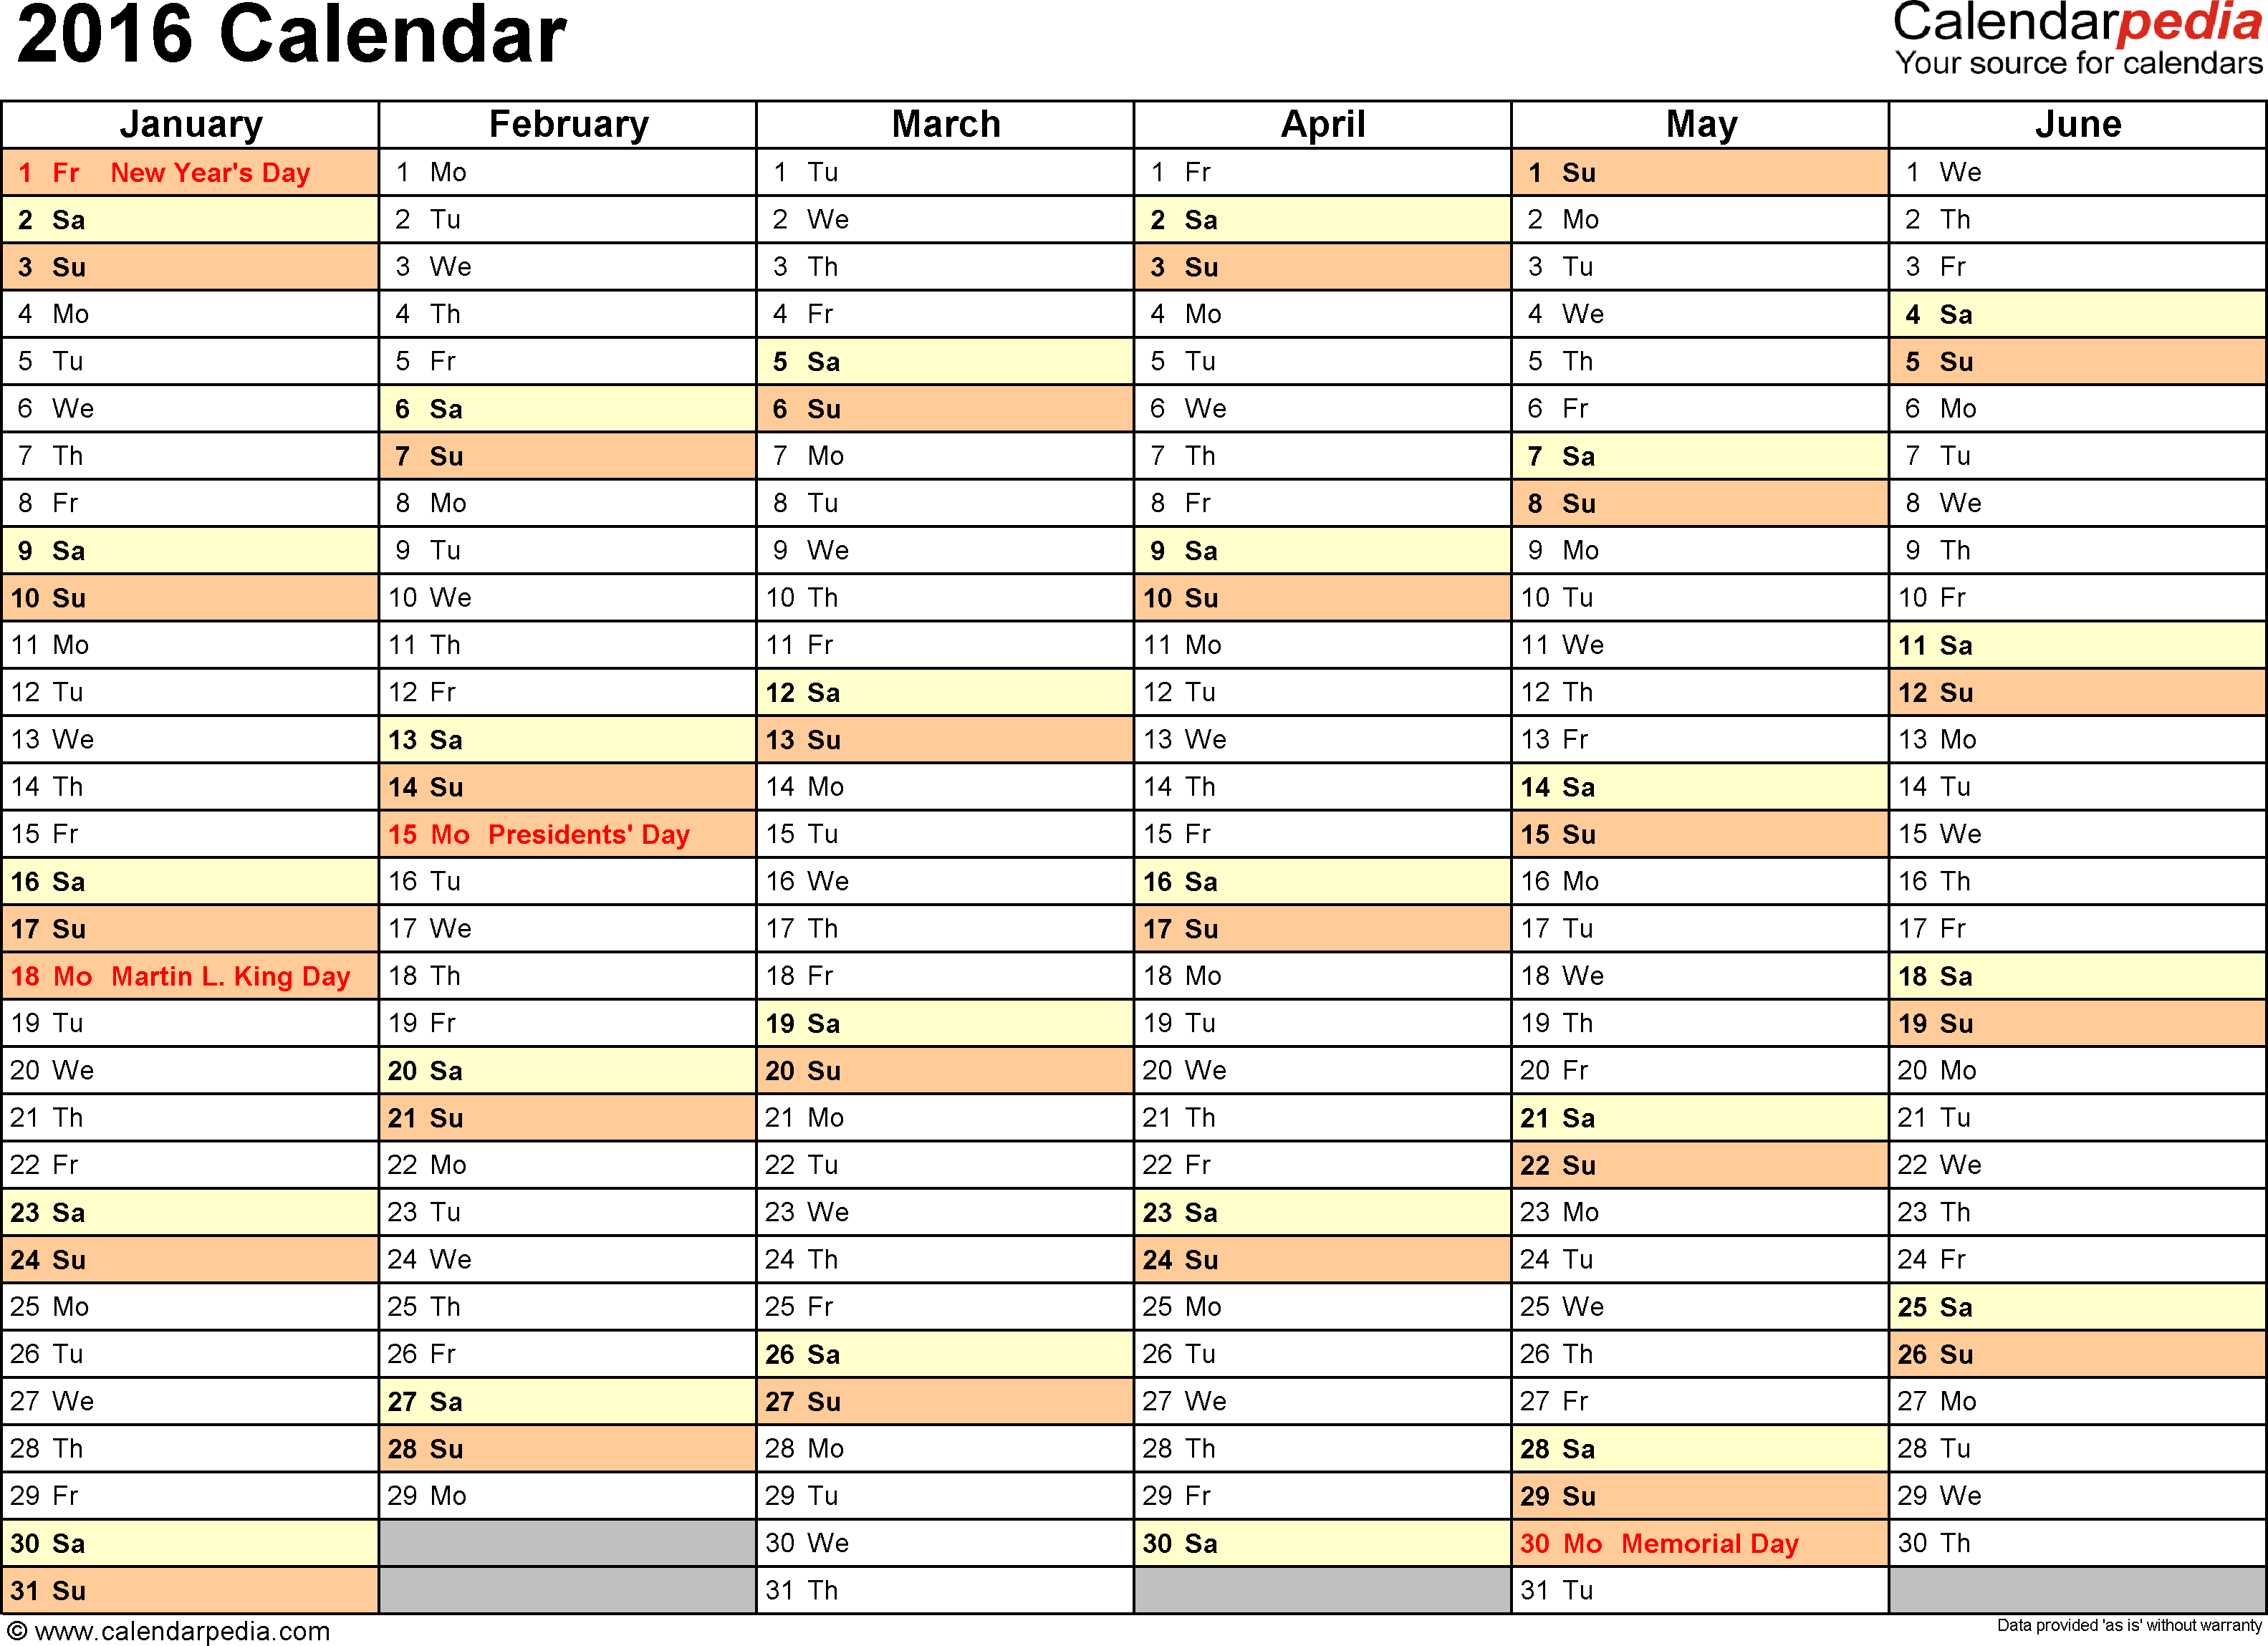 Ediblewildsus  Outstanding  Calendar  Download  Free Printable Excel Templates Xls With Remarkable Template   Calendar For Excel Months Horizontally  Pages Landscape Orientation With Lovely Excel  Also Free Gantt Chart Template For Excel In Addition Recover Corrupt Excel File And Excel Pixels To Inches As Well As Excel What If Data Table Additionally Create Dropdown List In Excel From Calendarpediacom With Ediblewildsus  Remarkable  Calendar  Download  Free Printable Excel Templates Xls With Lovely Template   Calendar For Excel Months Horizontally  Pages Landscape Orientation And Outstanding Excel  Also Free Gantt Chart Template For Excel In Addition Recover Corrupt Excel File From Calendarpediacom